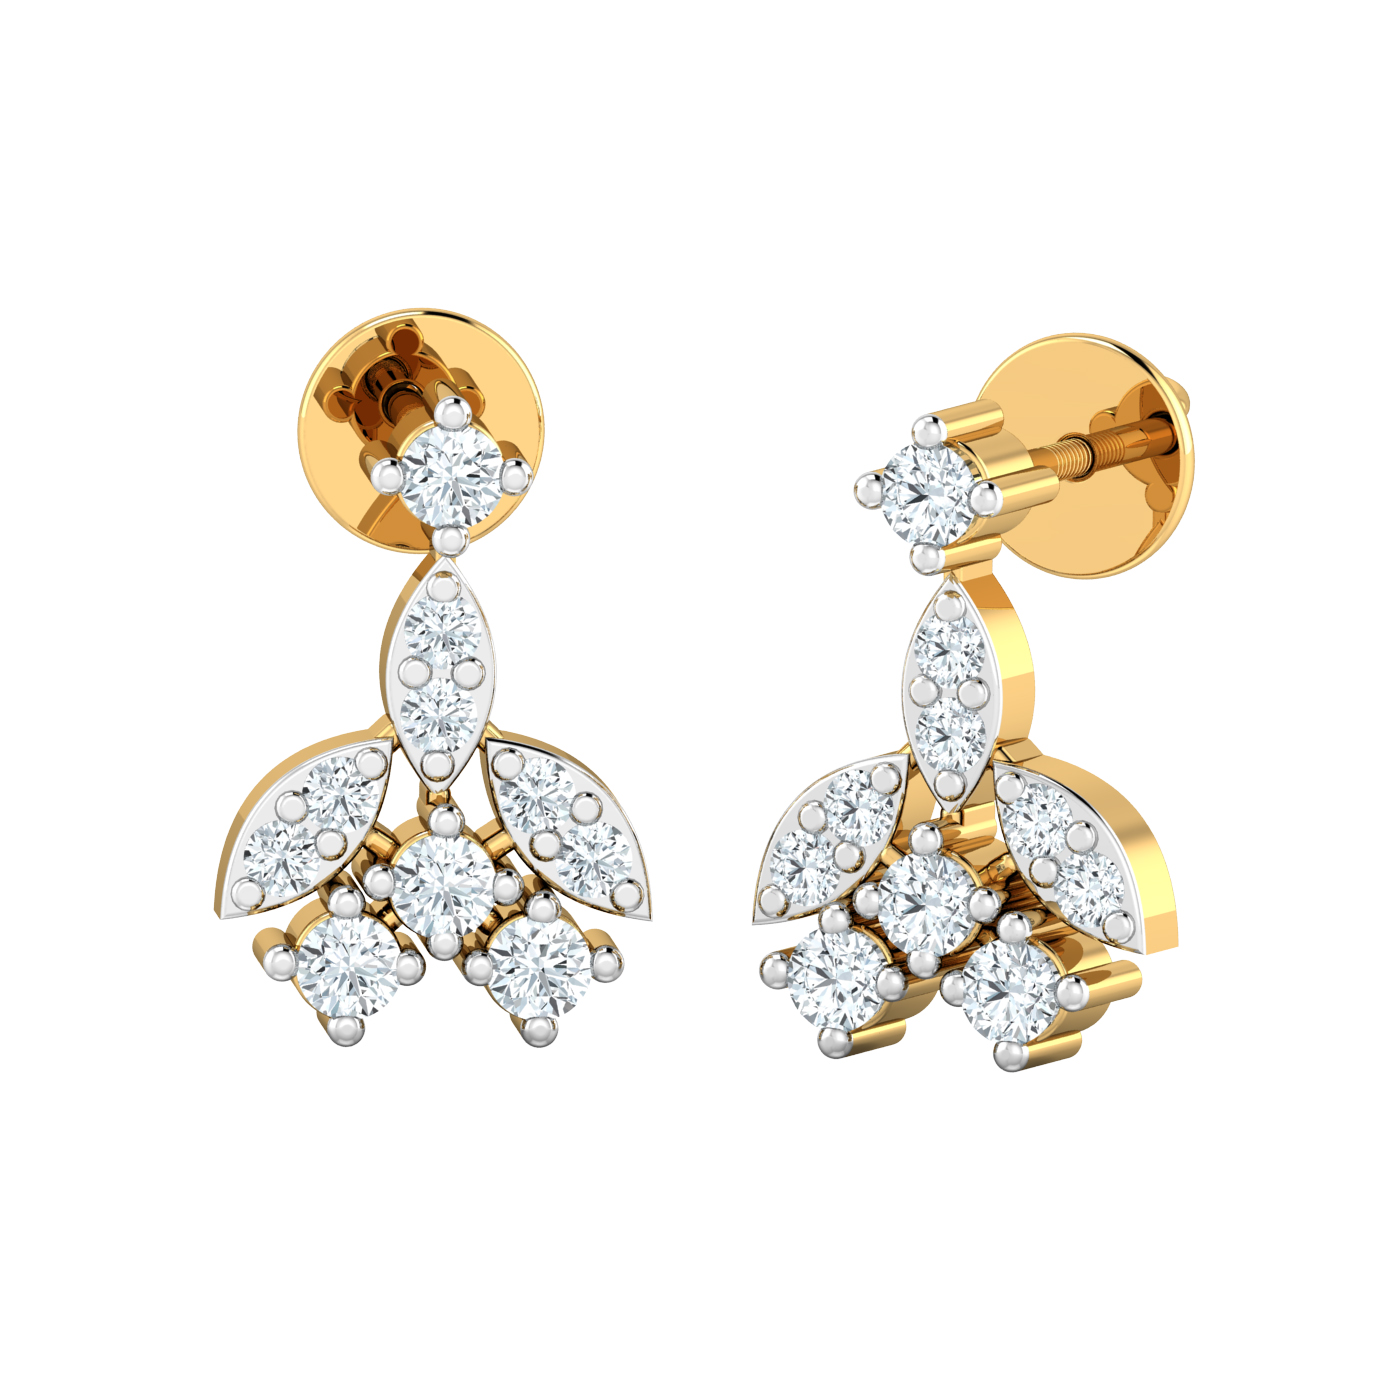 diamond earrings for women natural certified gold studs. Black Bedroom Furniture Sets. Home Design Ideas